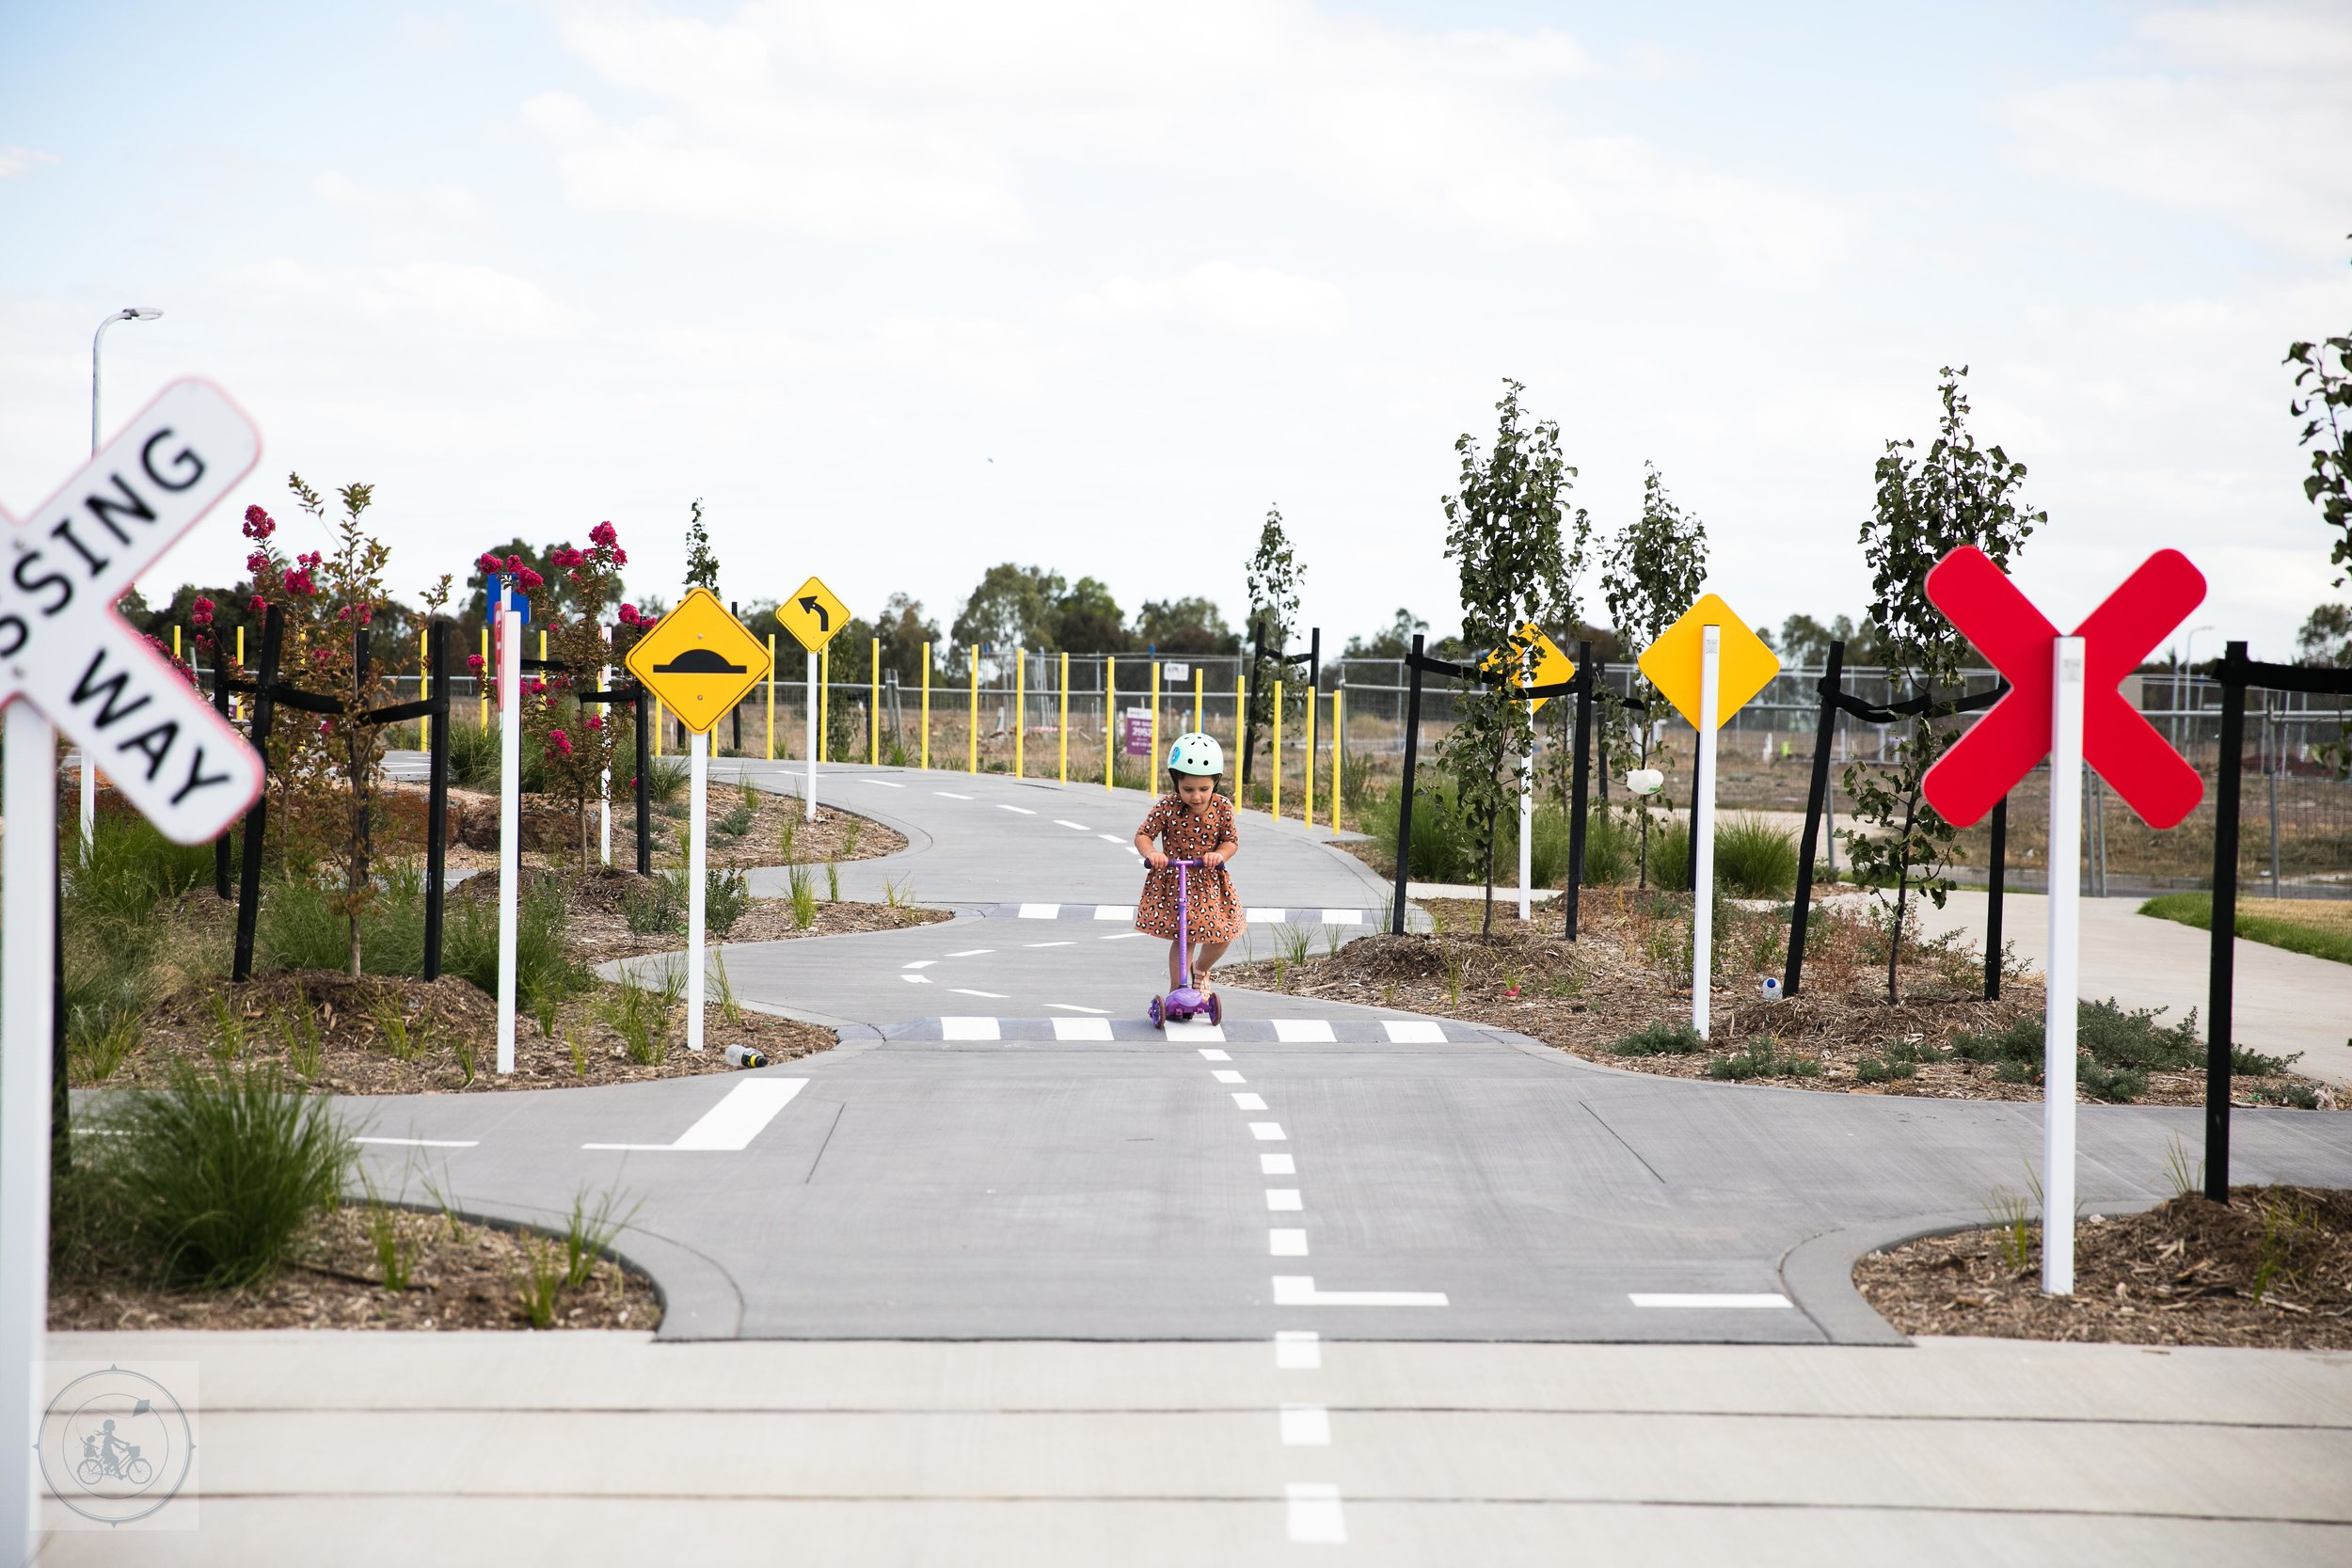 traffic park @ aston, craigieburn - mamma knows north